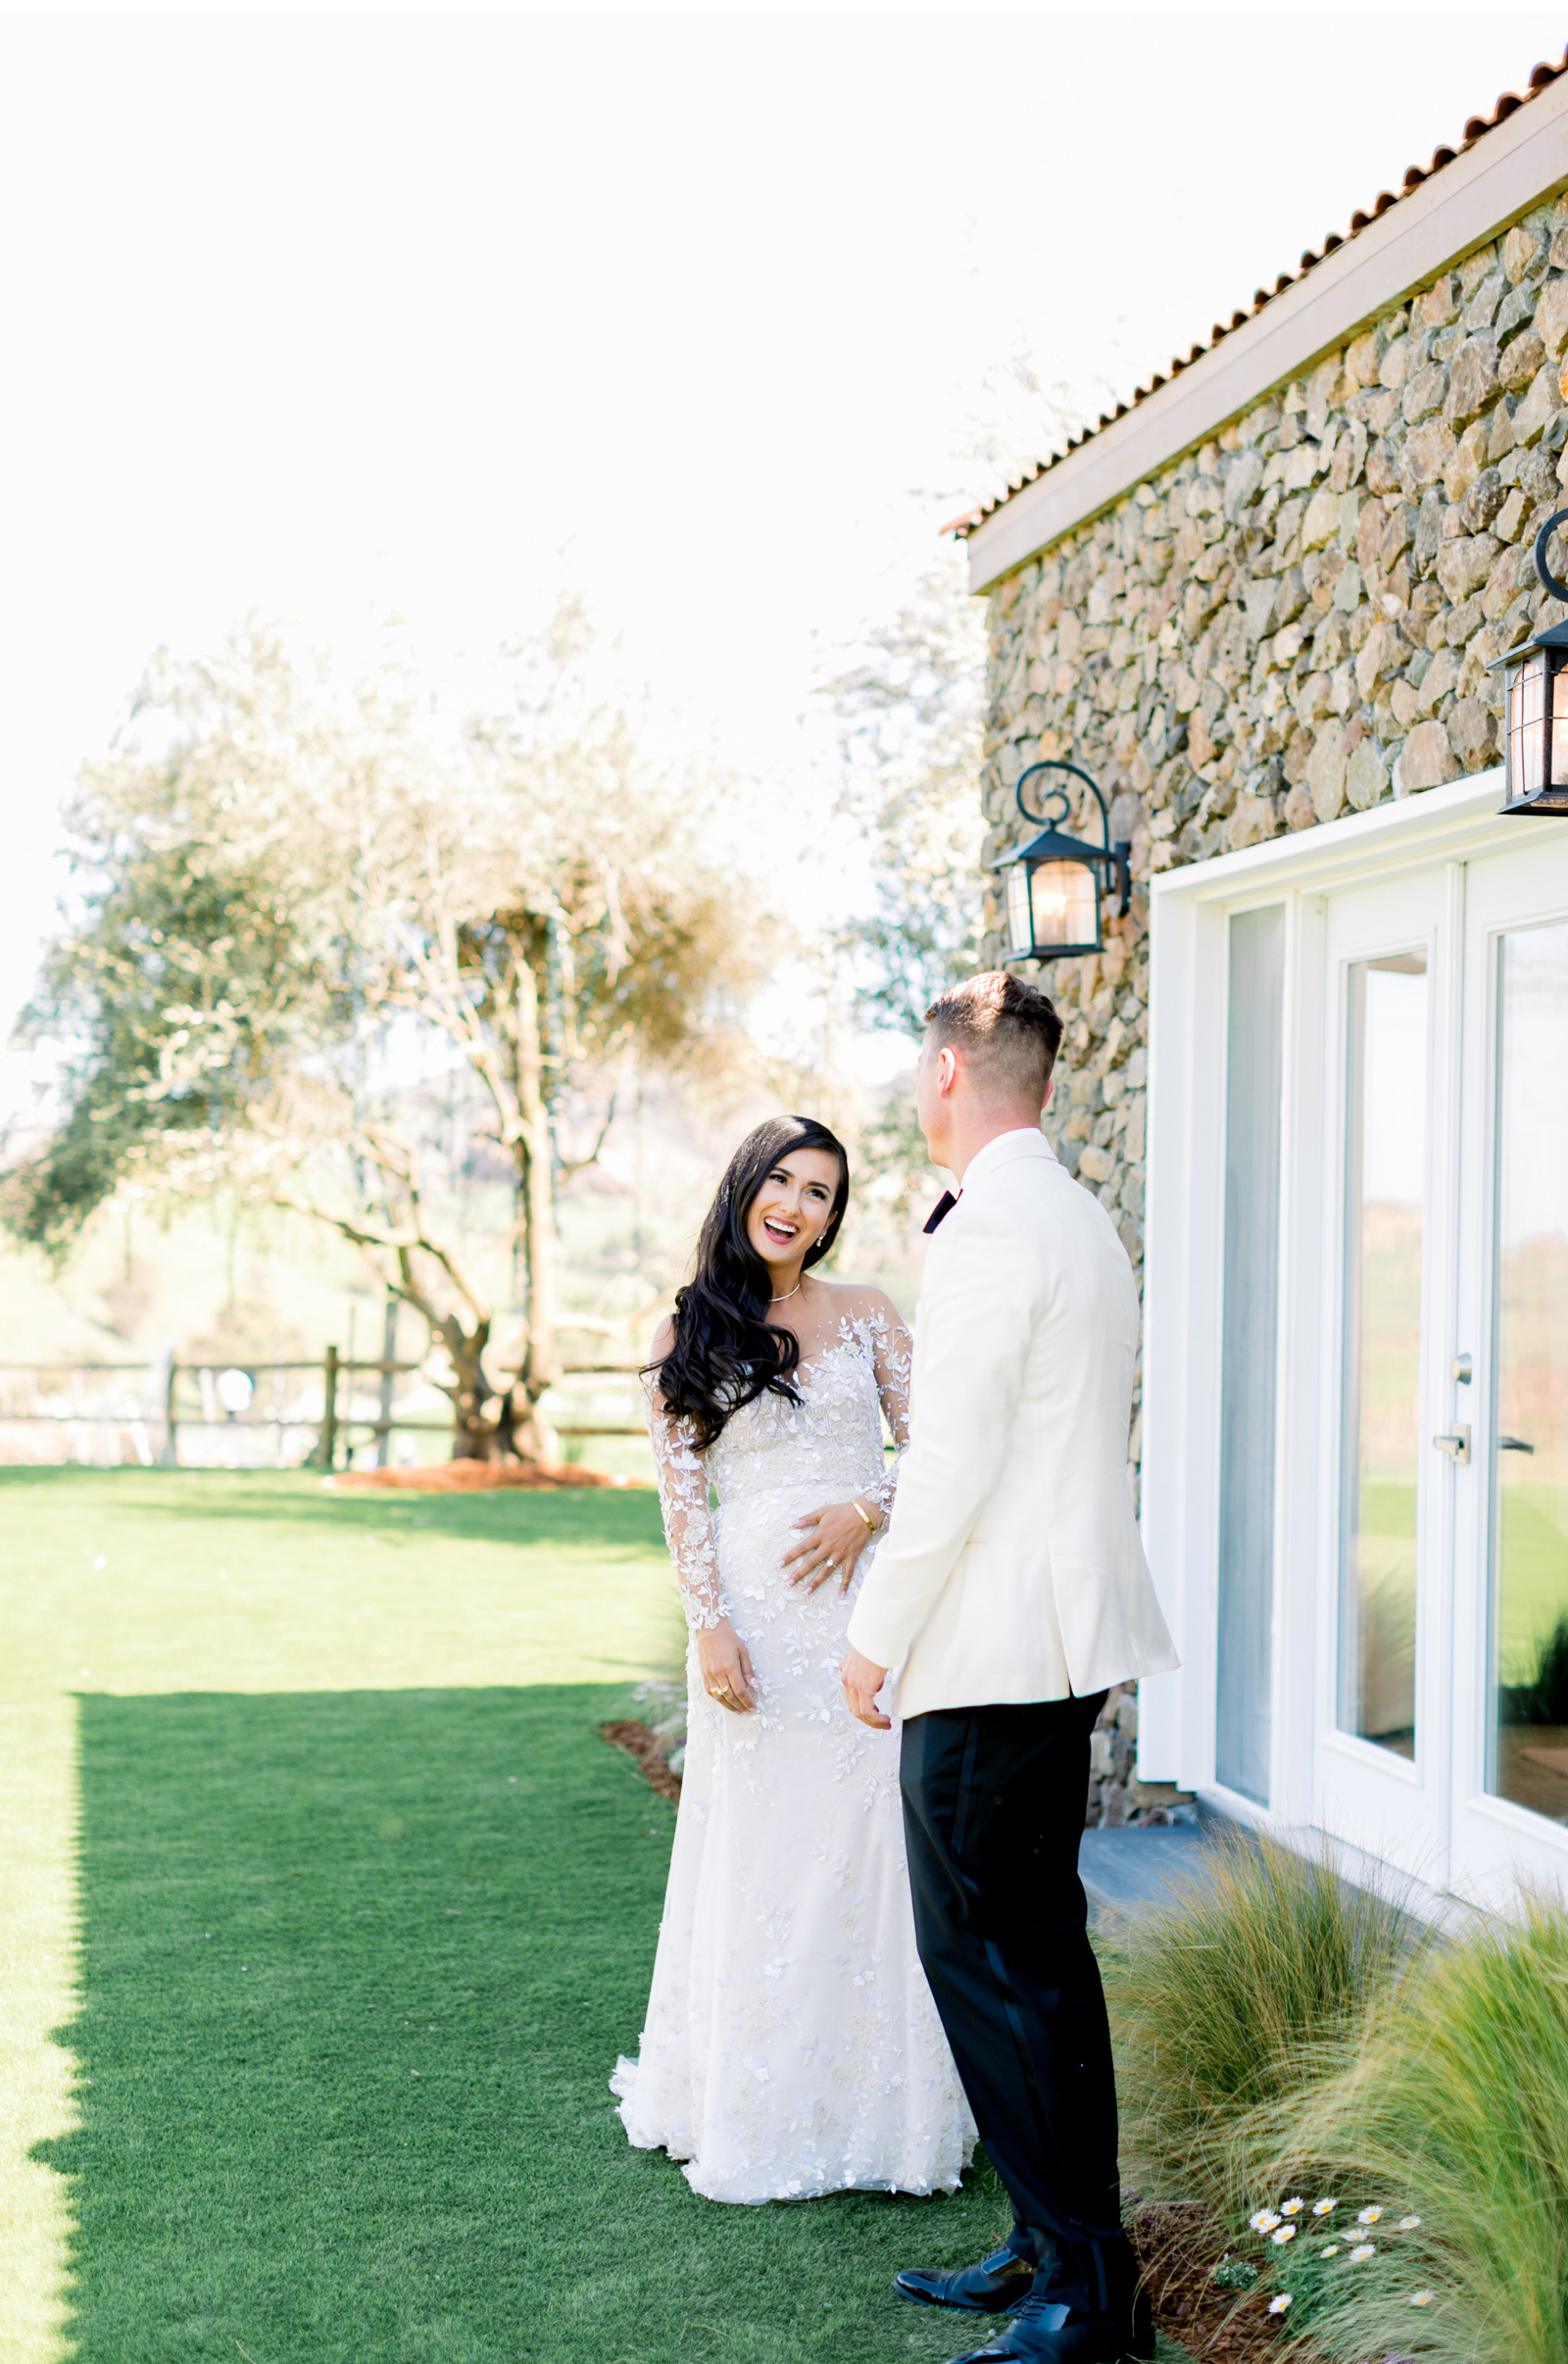 Southern-California-Wedding-Photographer-Natalie-Schutt-Photography-Style-Me-Pretty-Malibu-Rocky-Oaks-Photographer_15.jpg